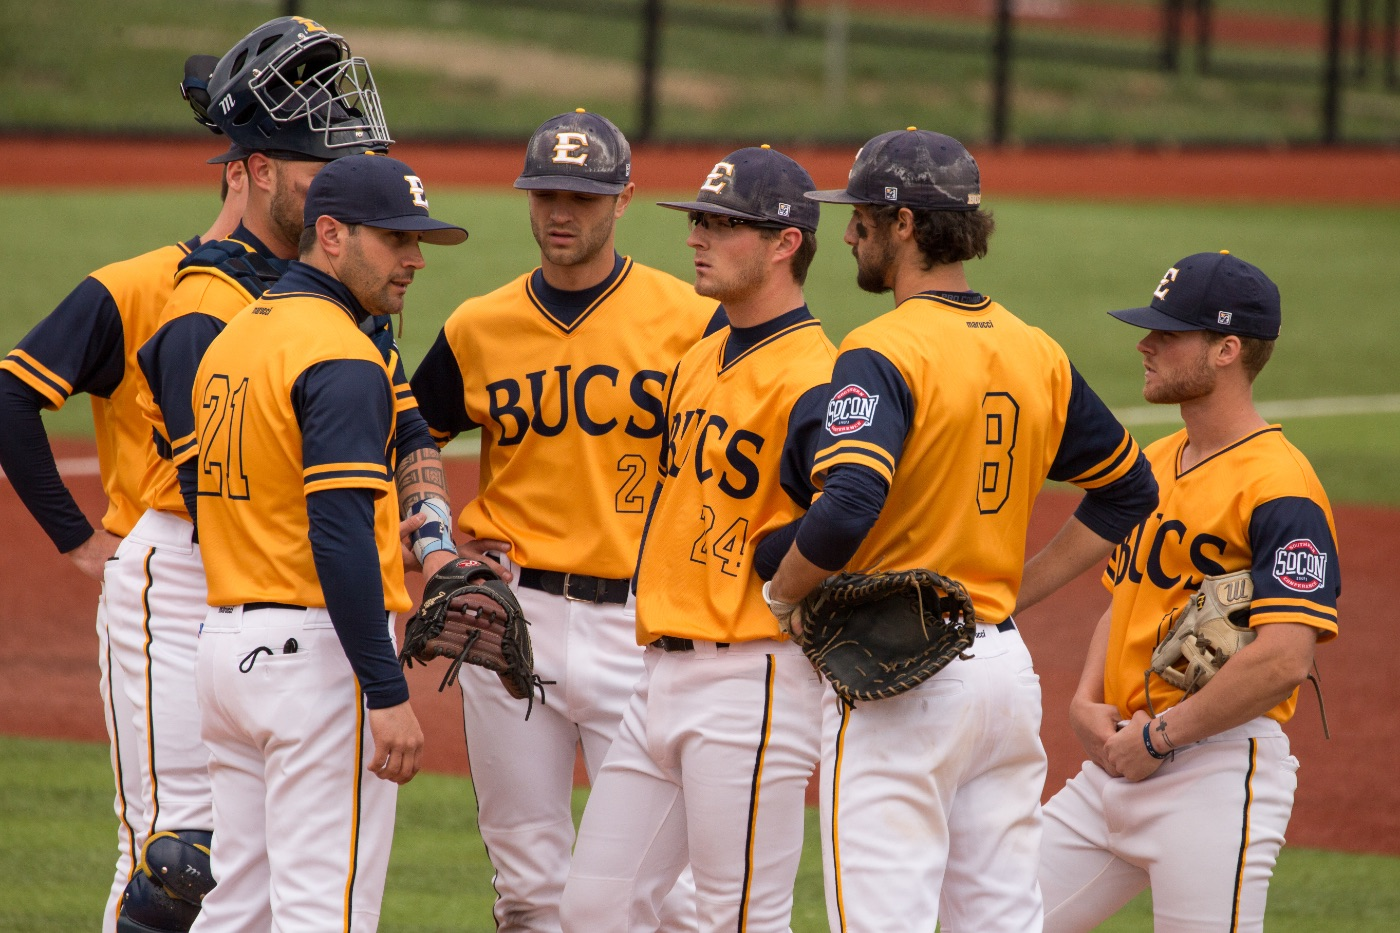 Bucs fall to Tribe on walk-off in rubber match